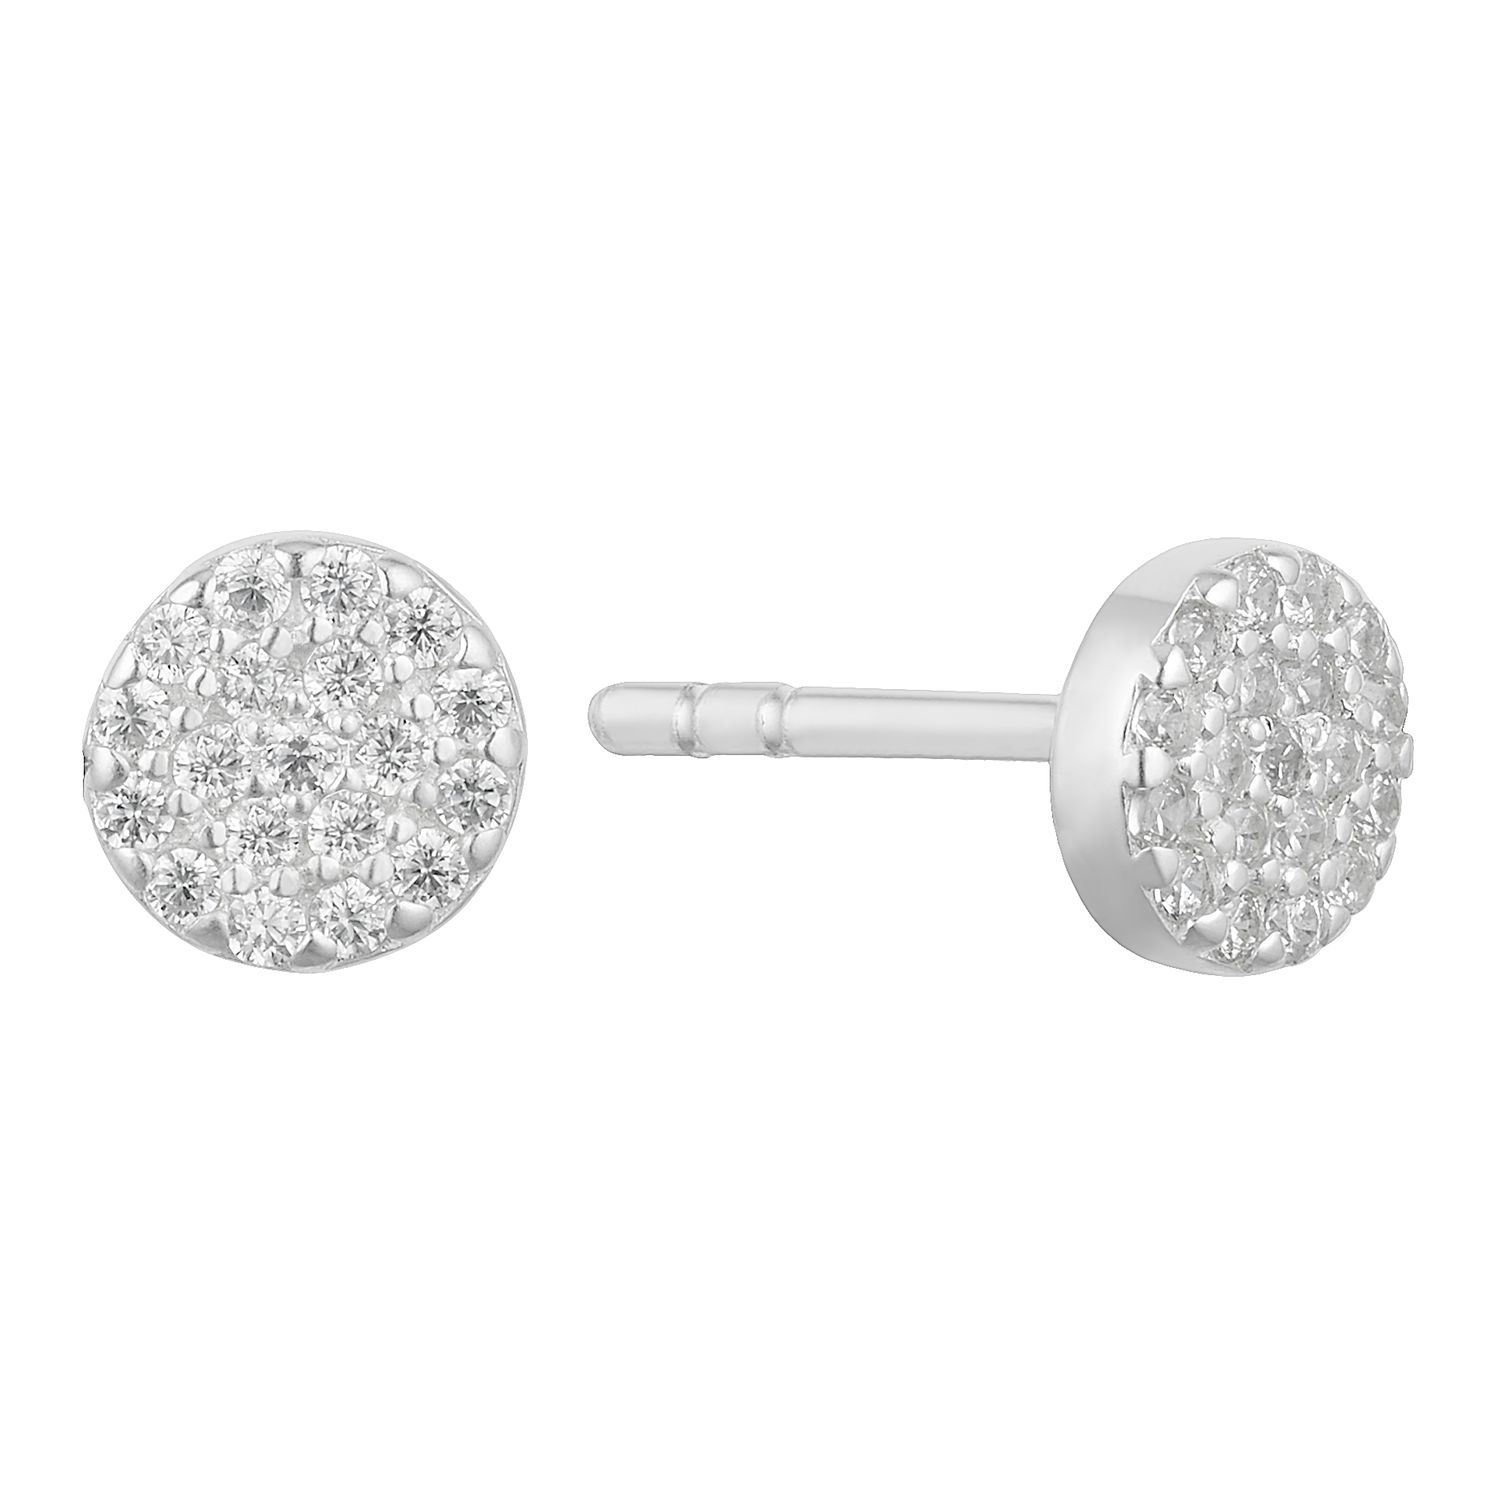 Silver Cubic Zirconia Round Stud Earrings - Product number 3045099